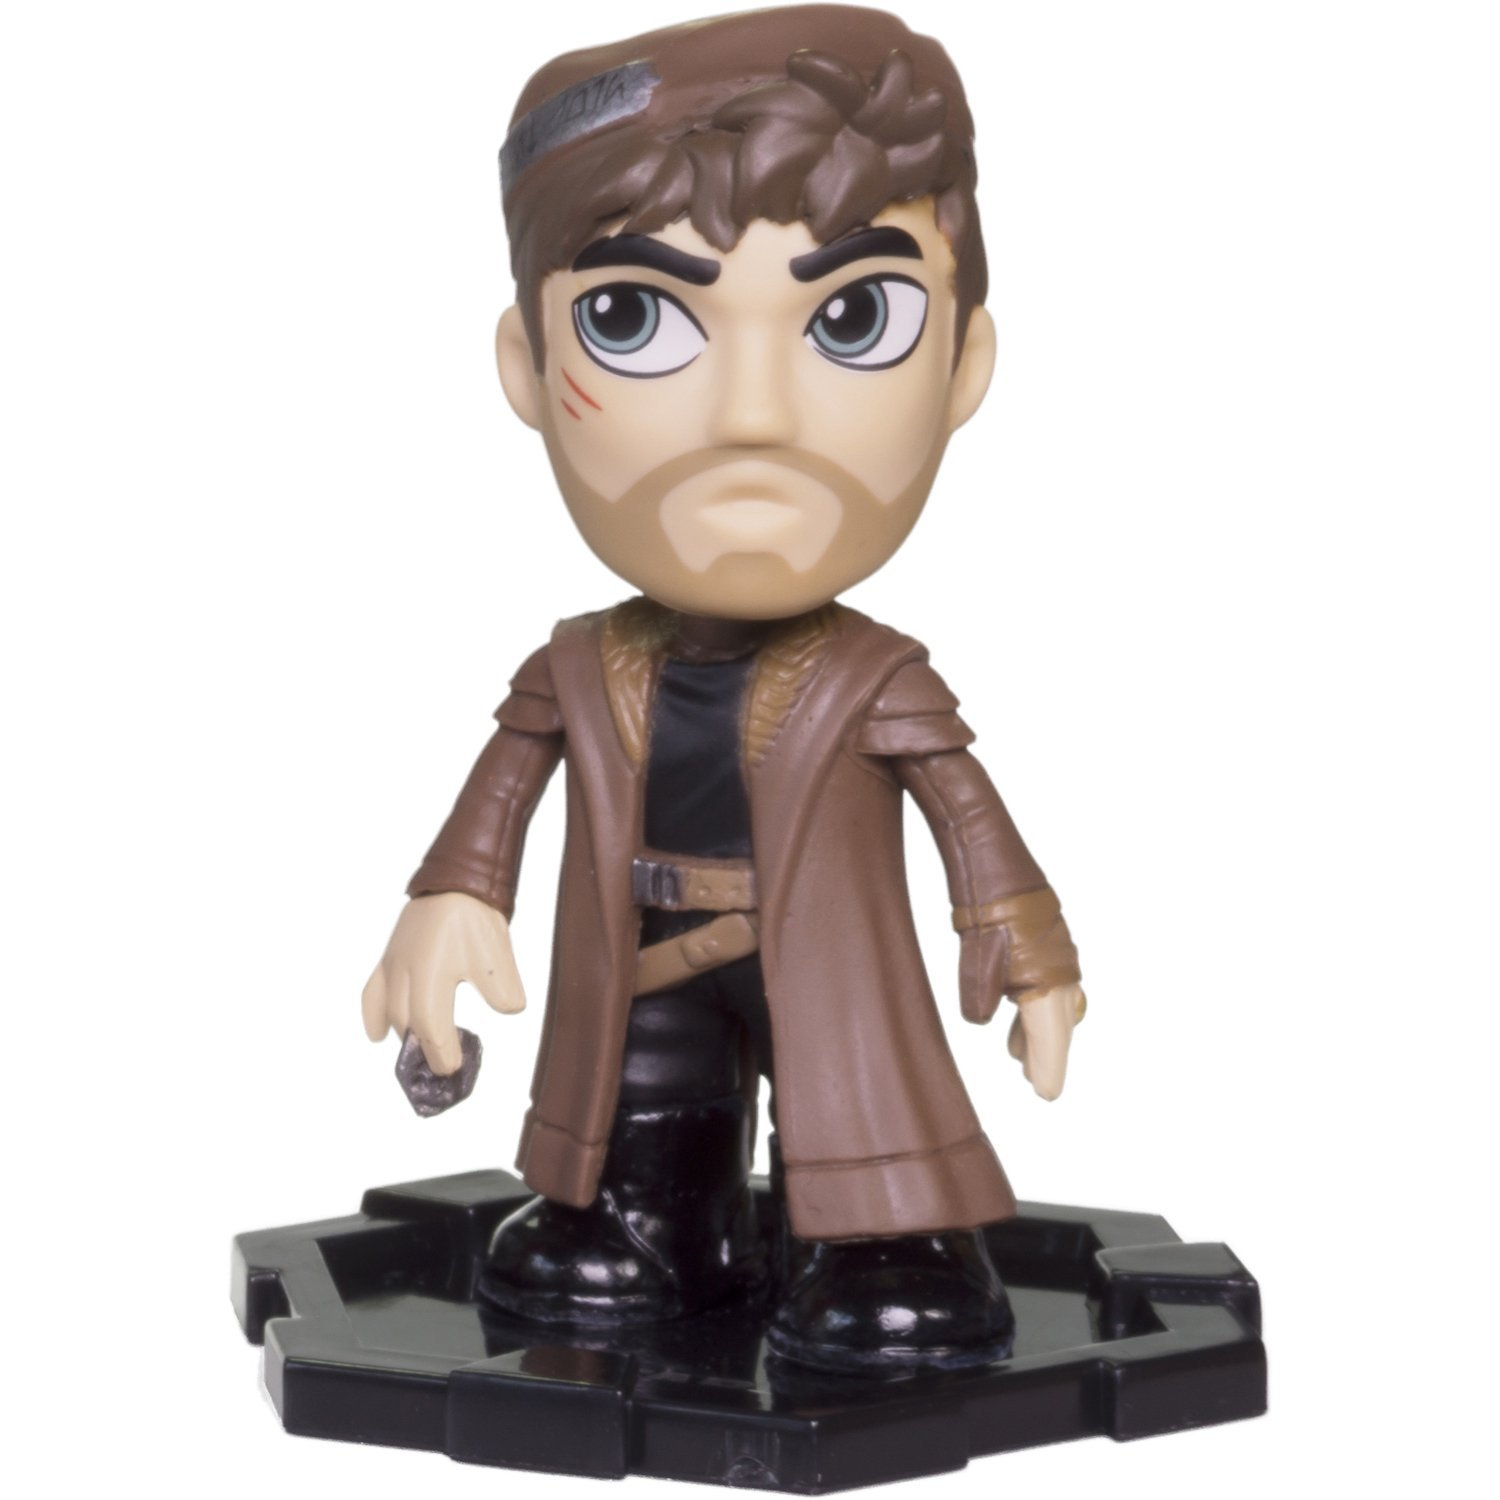 TLJ Funko Pop! DJ Mystery Mini Bobble Head Toy 2